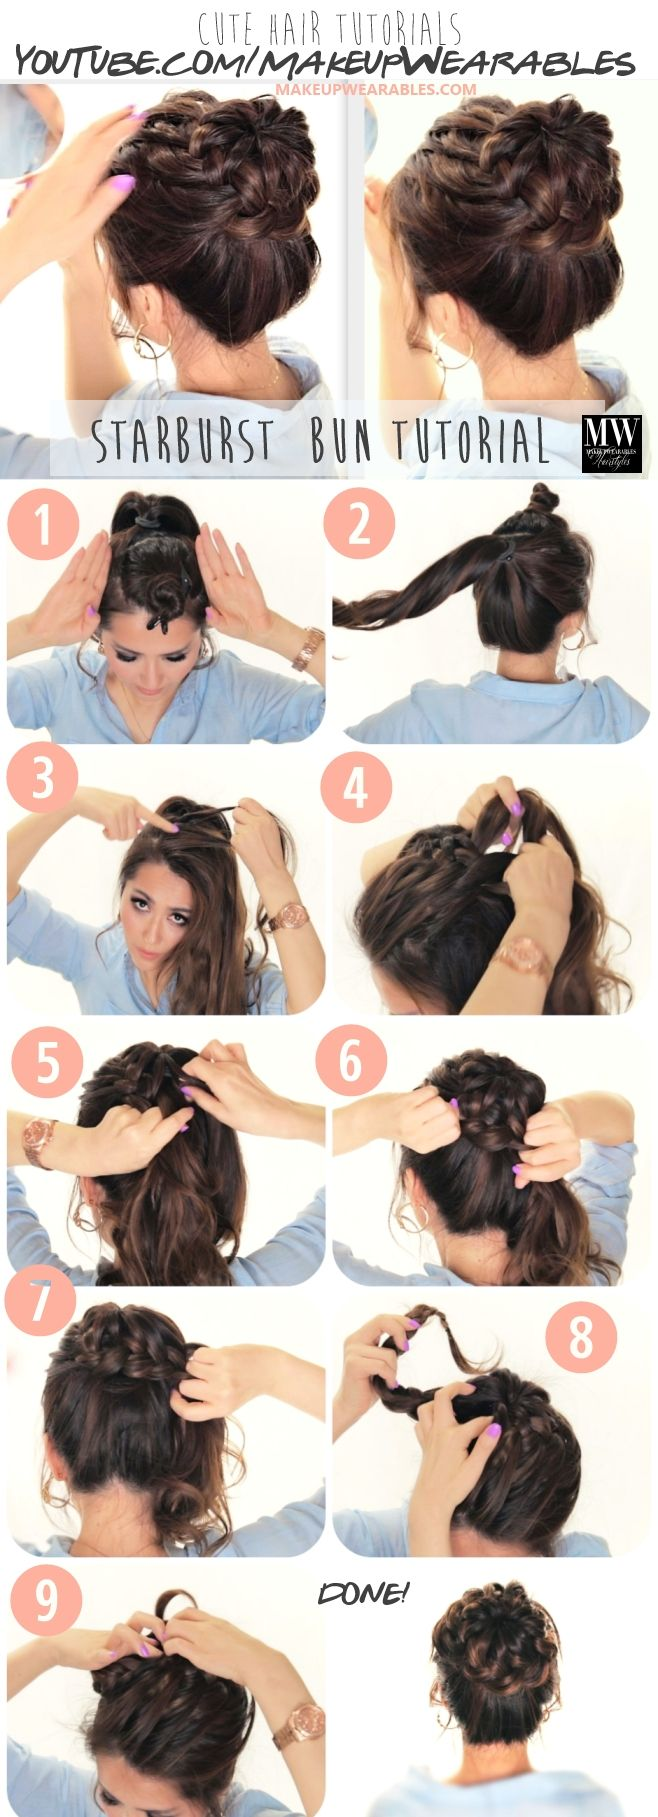 #DIY Starburst Braided #Bun #Hairstyle | #Hair Tutorial Video #style #fashion #styles #updos #messybun #updo #howto #women #ponytail #wedding #summer #braids